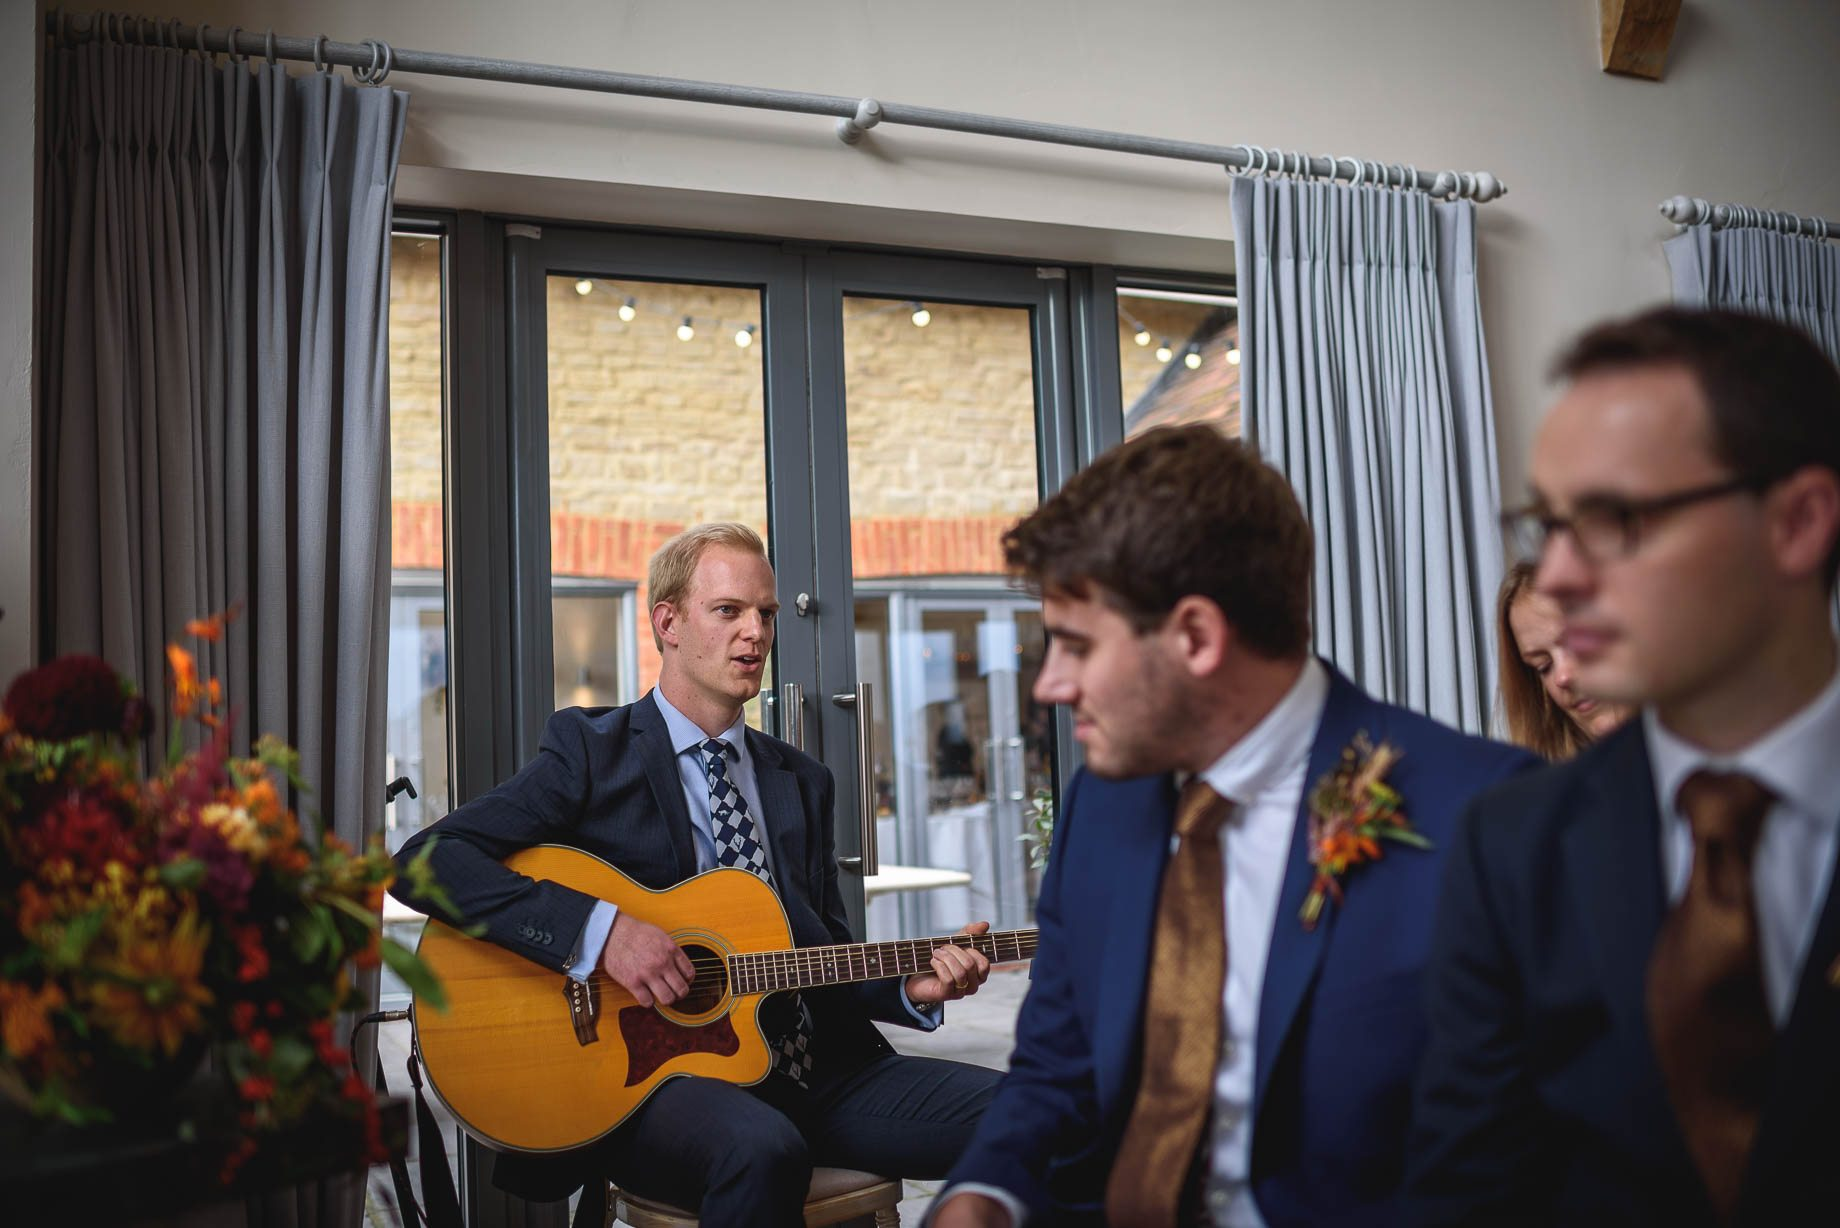 millbridge-court-wedding-photography-guy-collier-photography-clare-and-ian-78-of-188